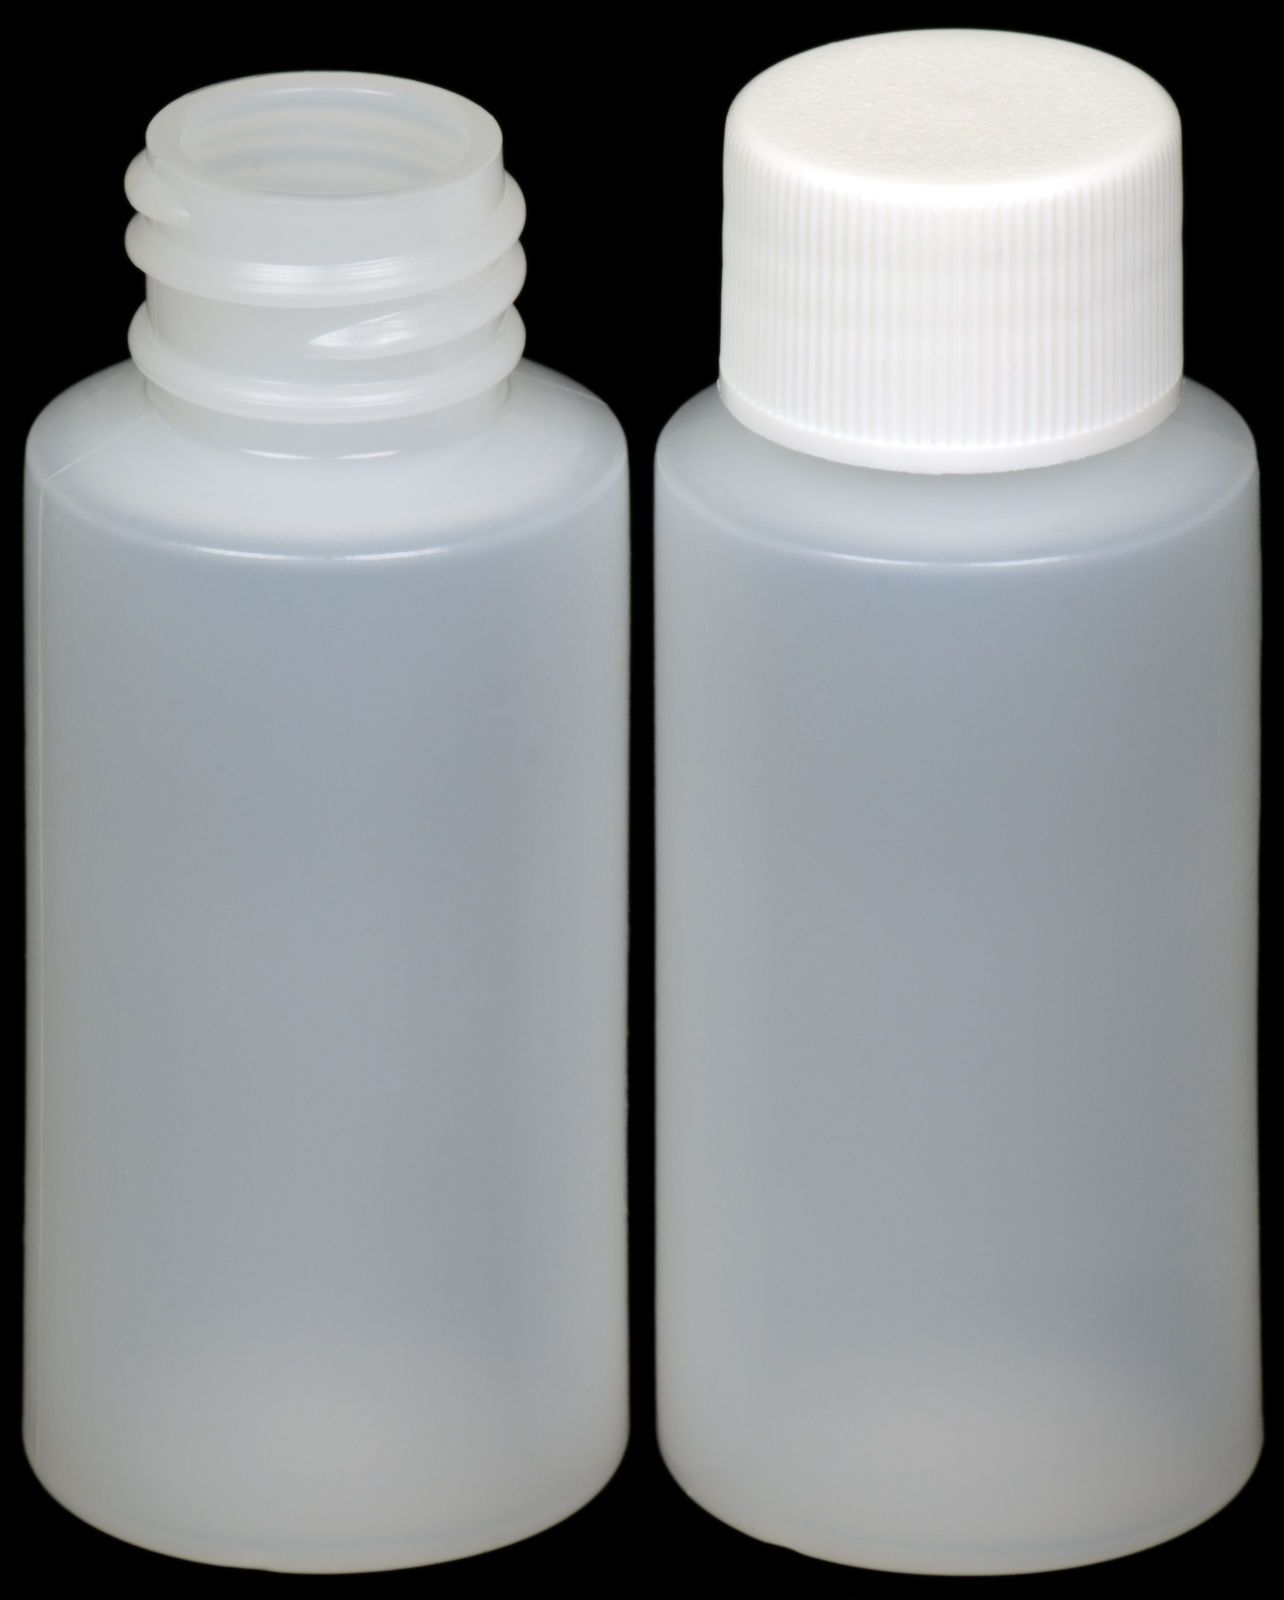 Organization And Storage 146396 Plastic Bottle Hdpe W White Lid 1 Oz 100 Pack New Buy It Now Only 13 75 Plastic Bottles Bottle Empty Plastic Bottles